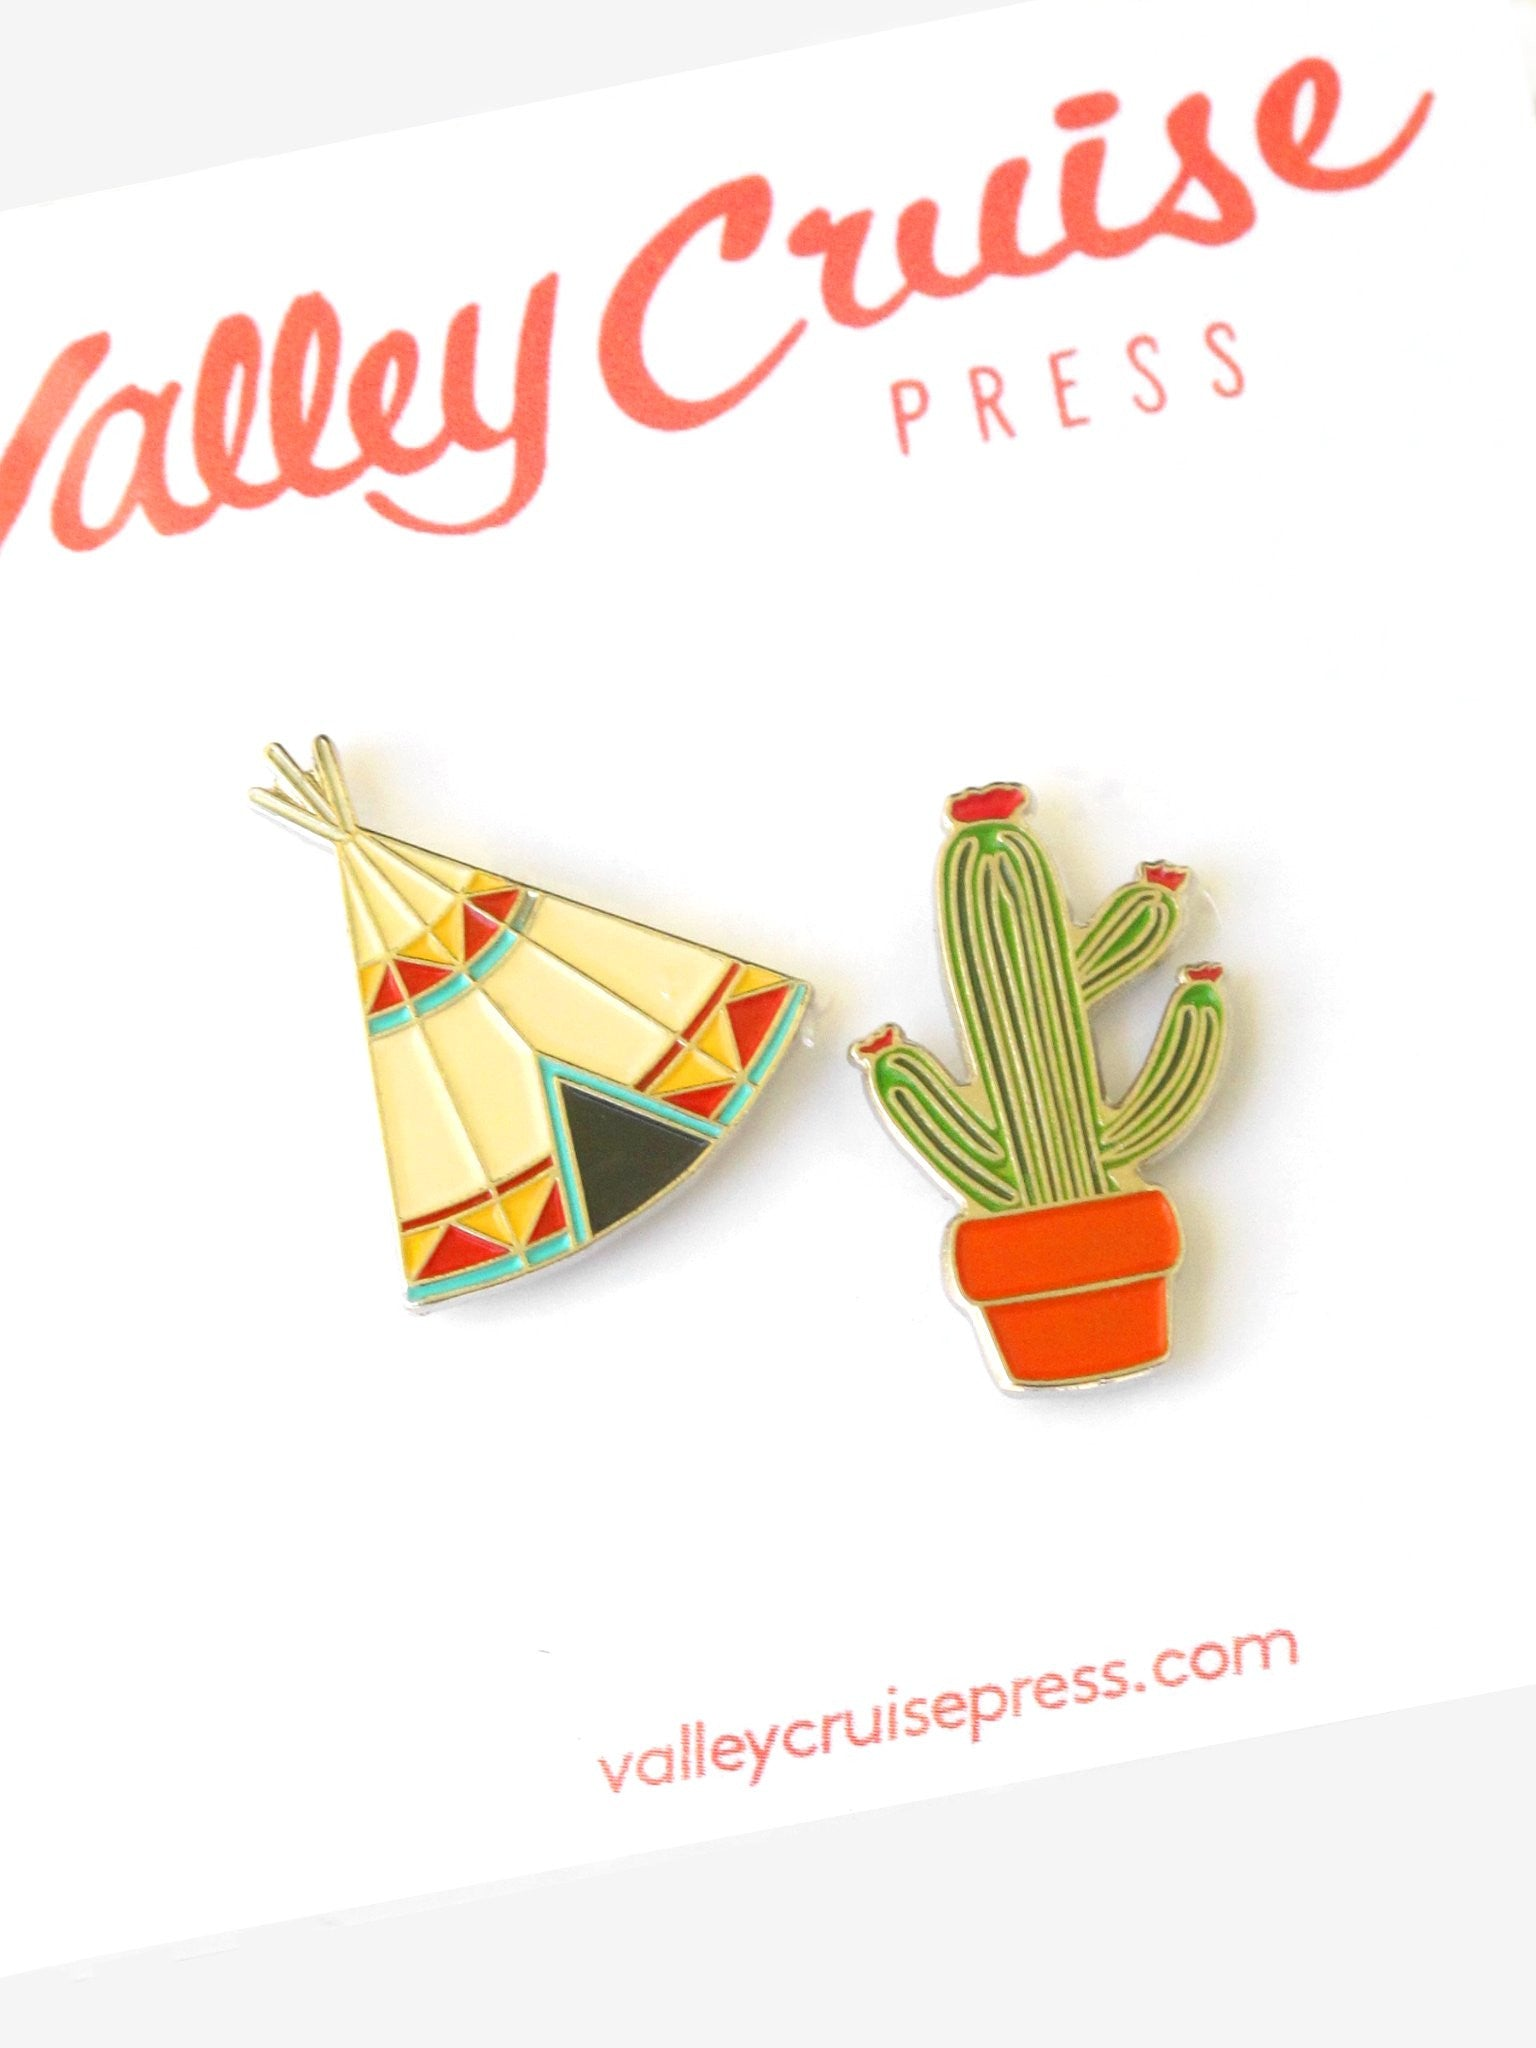 Desert Pin Set Valley Cruise Press